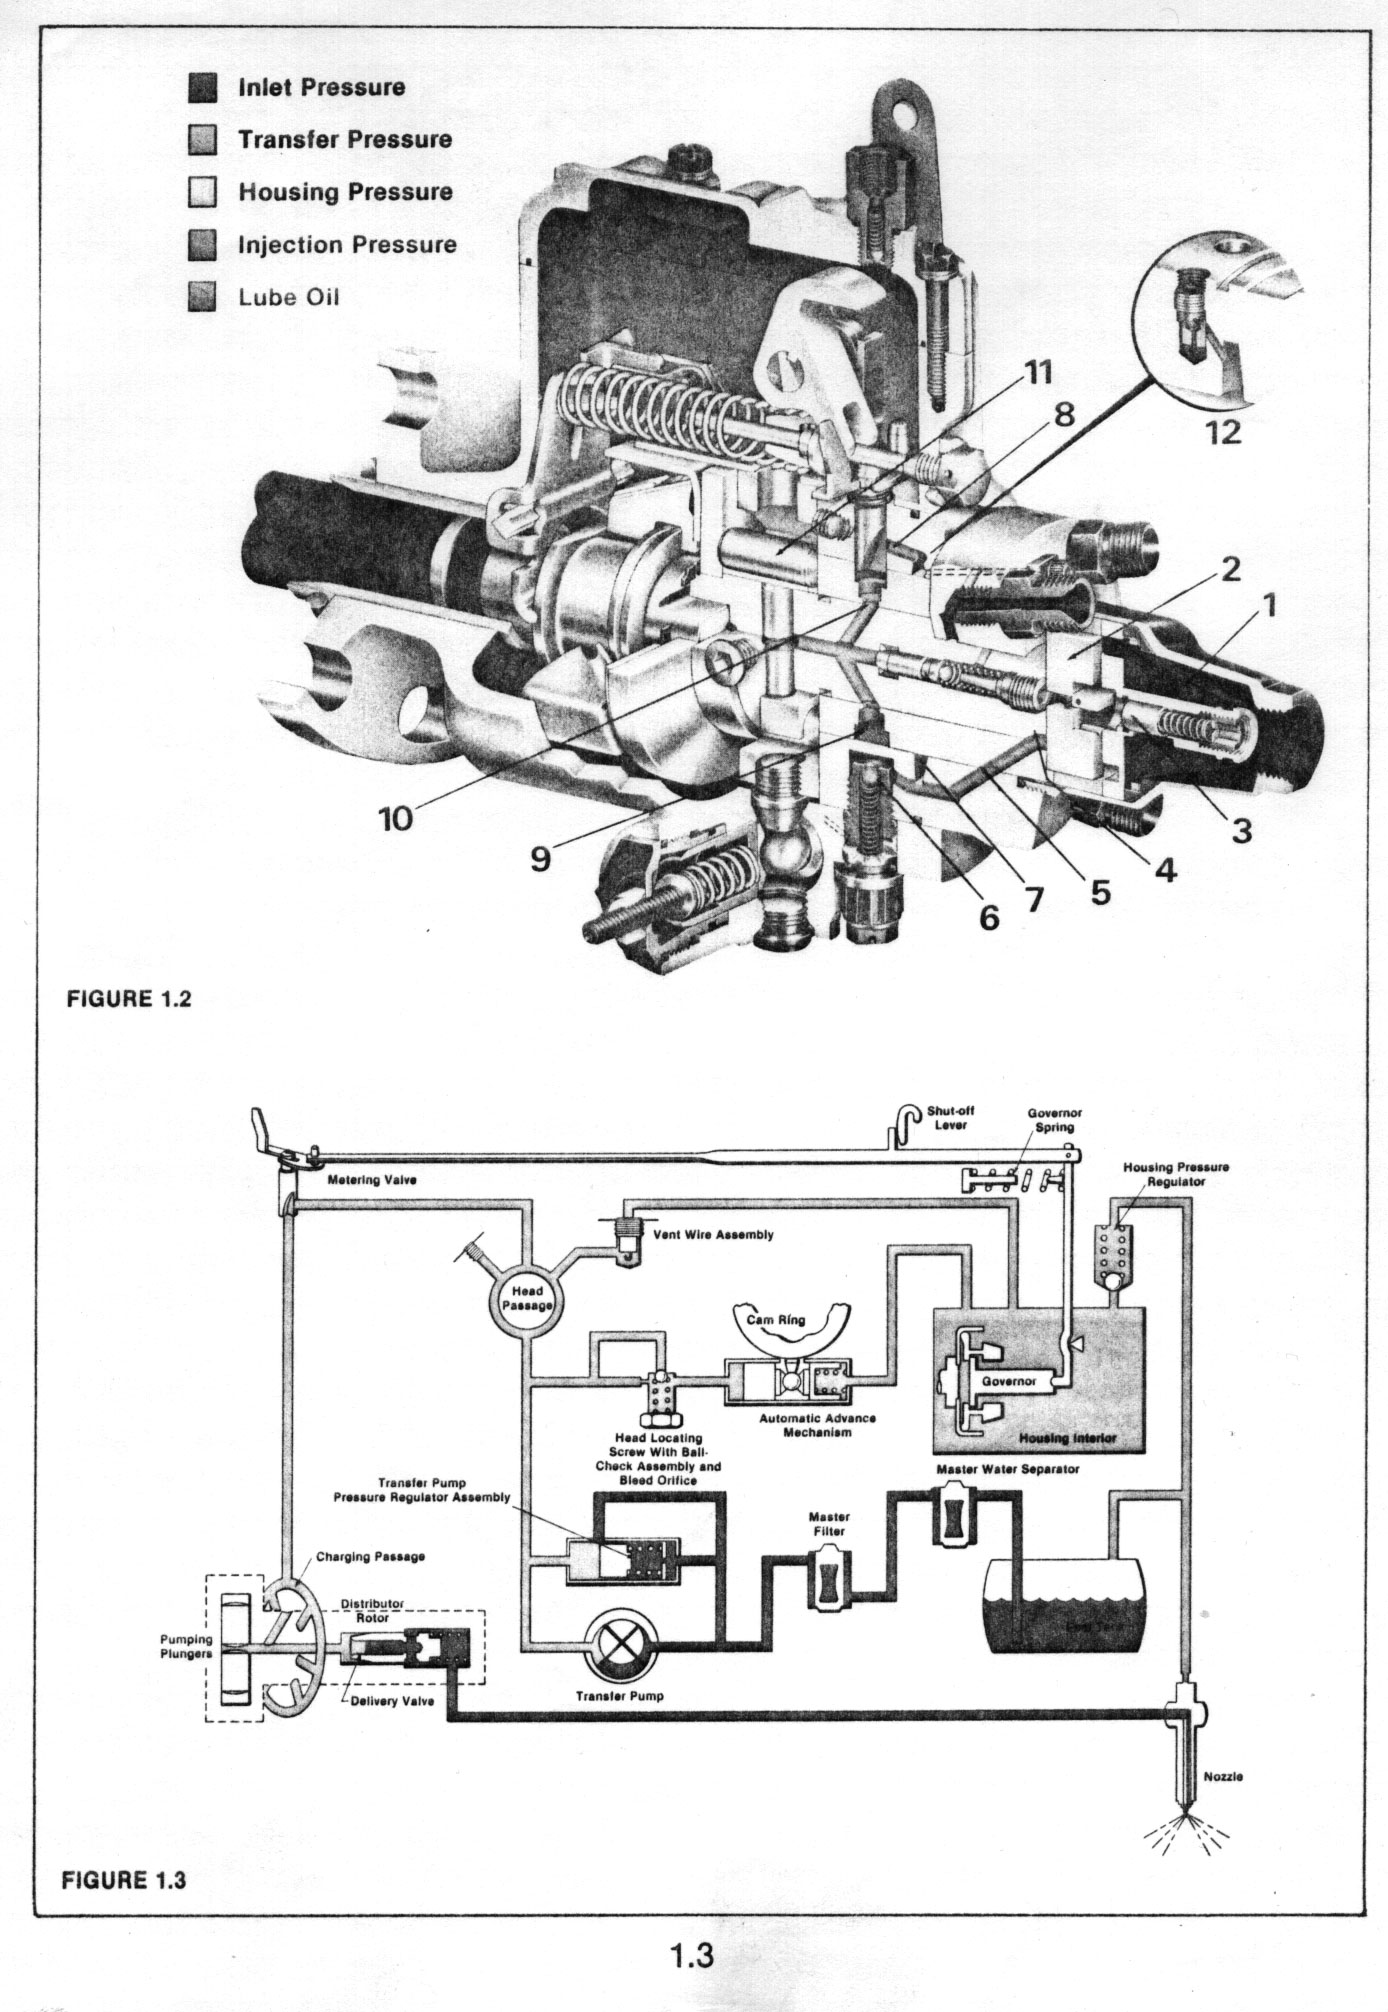 Injection Pump Schematic